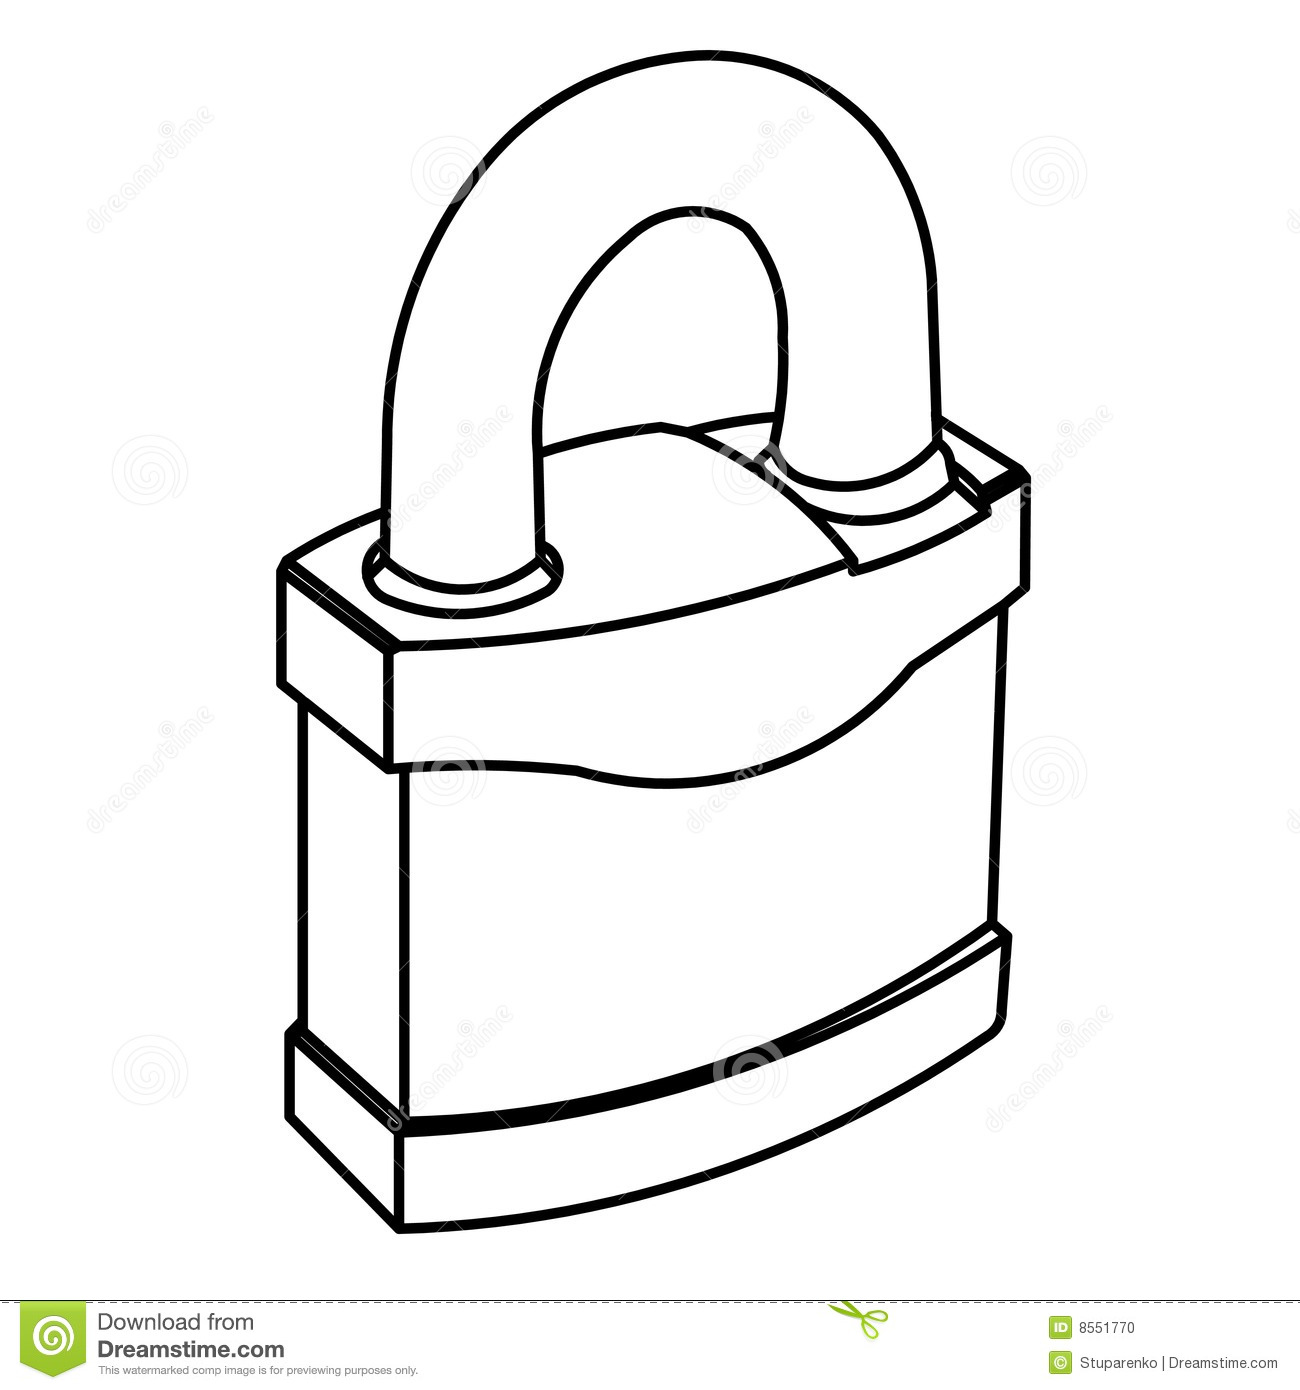 Heart Lock Drawing Sketch Templates together with Valves interlock in addition 179088522654859389 further Stock Illustration Heart Shaped Dream Catcher Moon Hand Drawn Romantic Drawing Feathers Vector Illustration Ethnic Tattoo Design Image65162588 likewise Big Decision In Lego Shape Trademark Challenge. on lock and key drawings